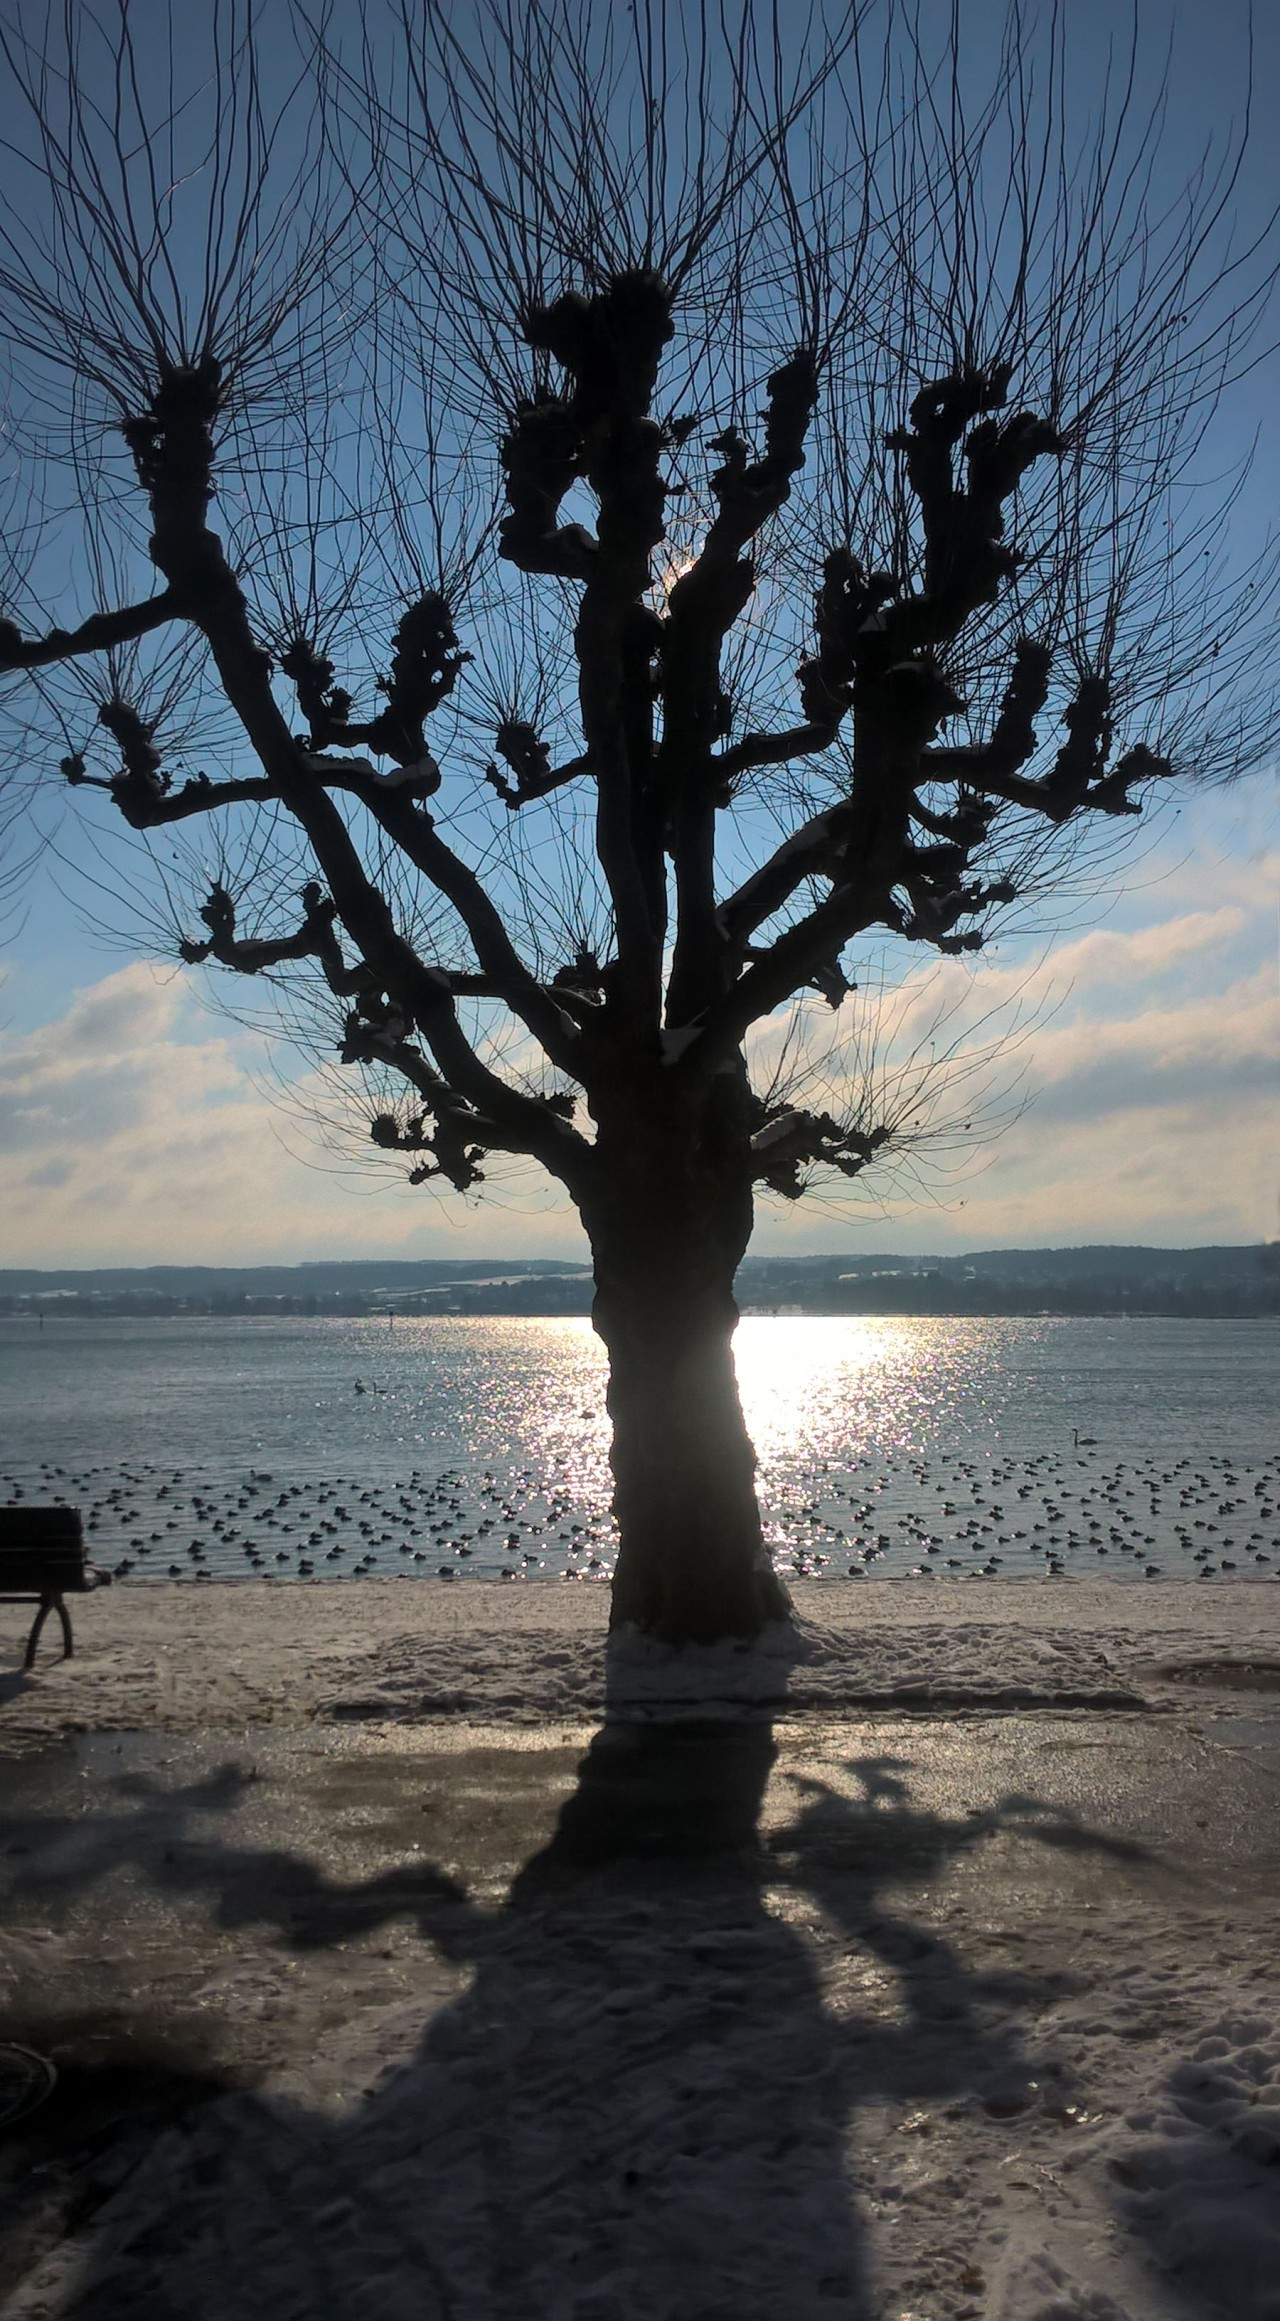 Winter-Platane am See